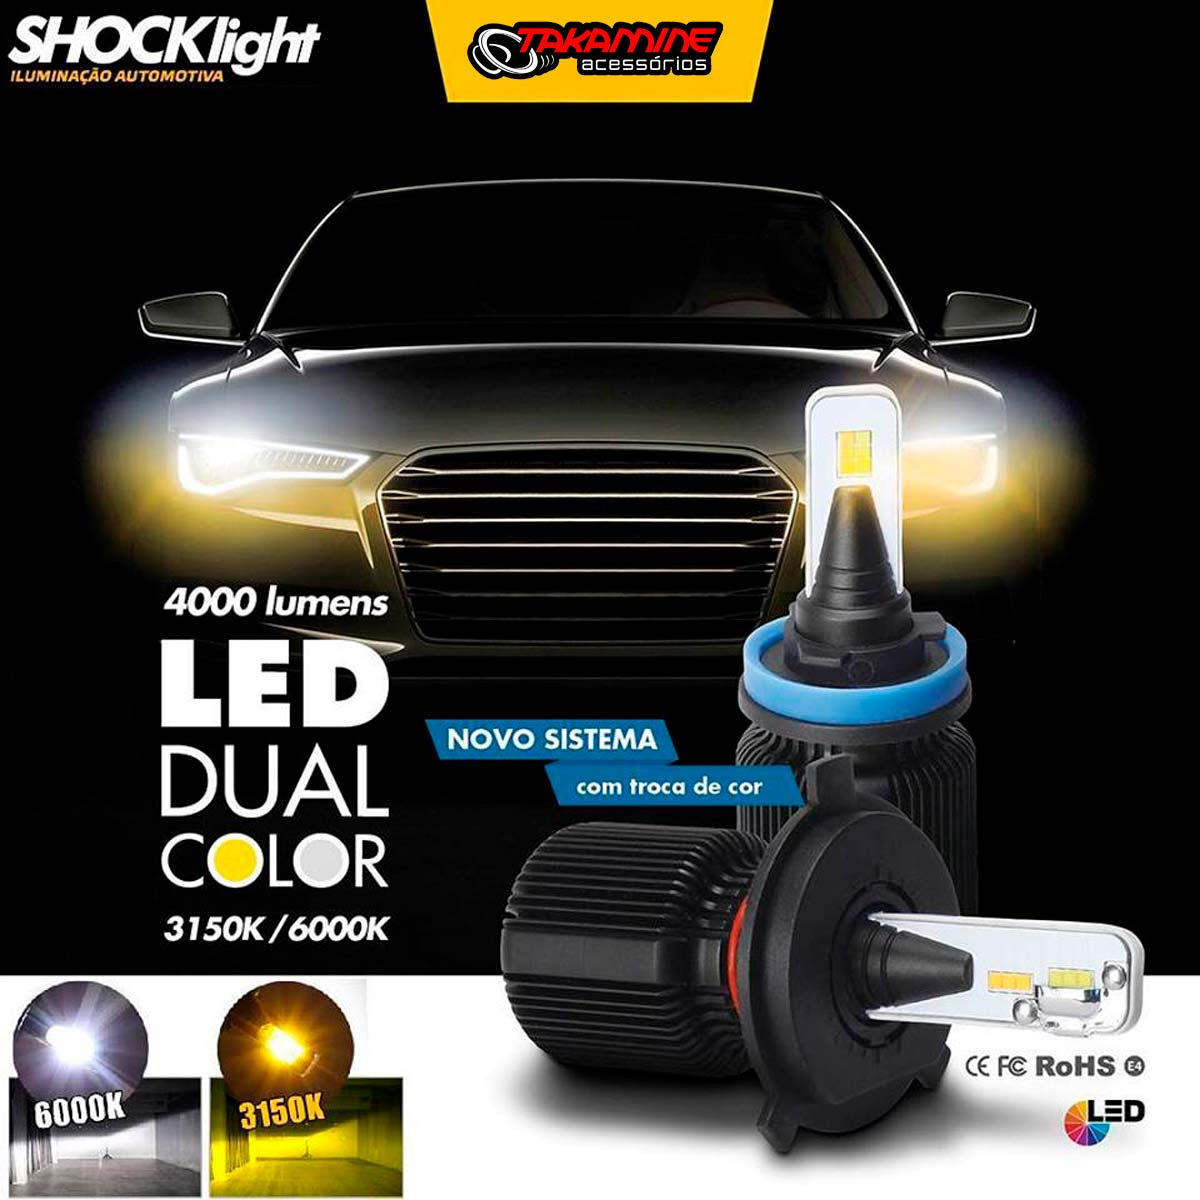 Kit de lâmpadas LED Dual Color Headlight Shocklight  tipo xenon  H16 25W ilumina branco e amarelo